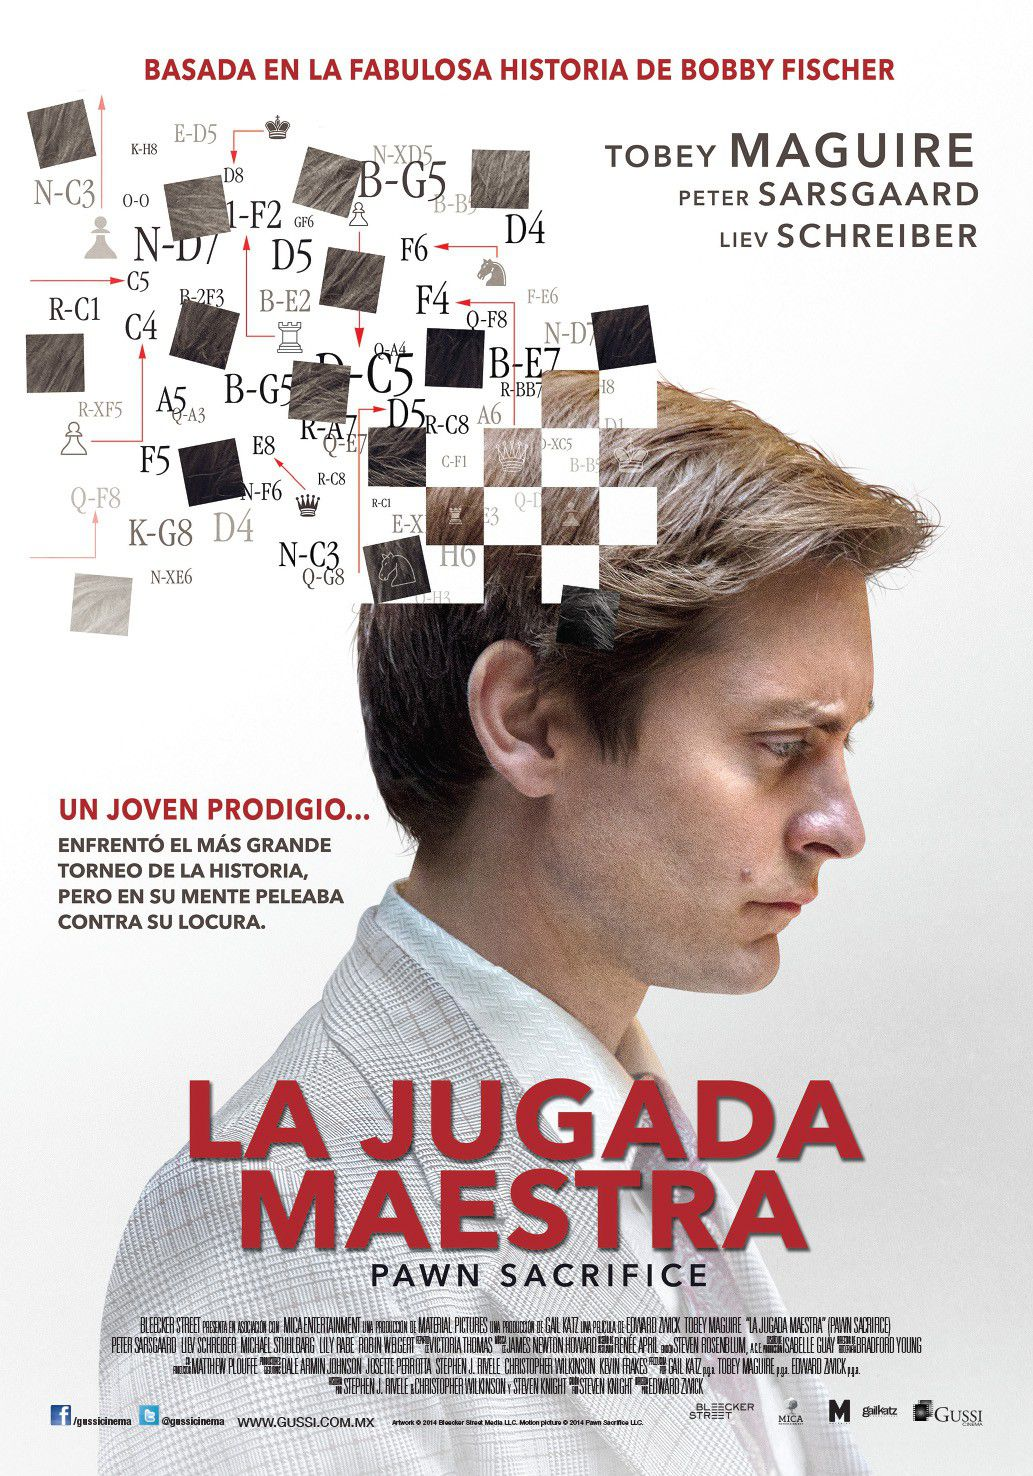 Pawn Sacrifice - La Grande Partita - La Jugada Maestra - True Story of Bobby Fisher - Tobey Maguire - Peter Sarsgaard - Liev Schreiber - film poster